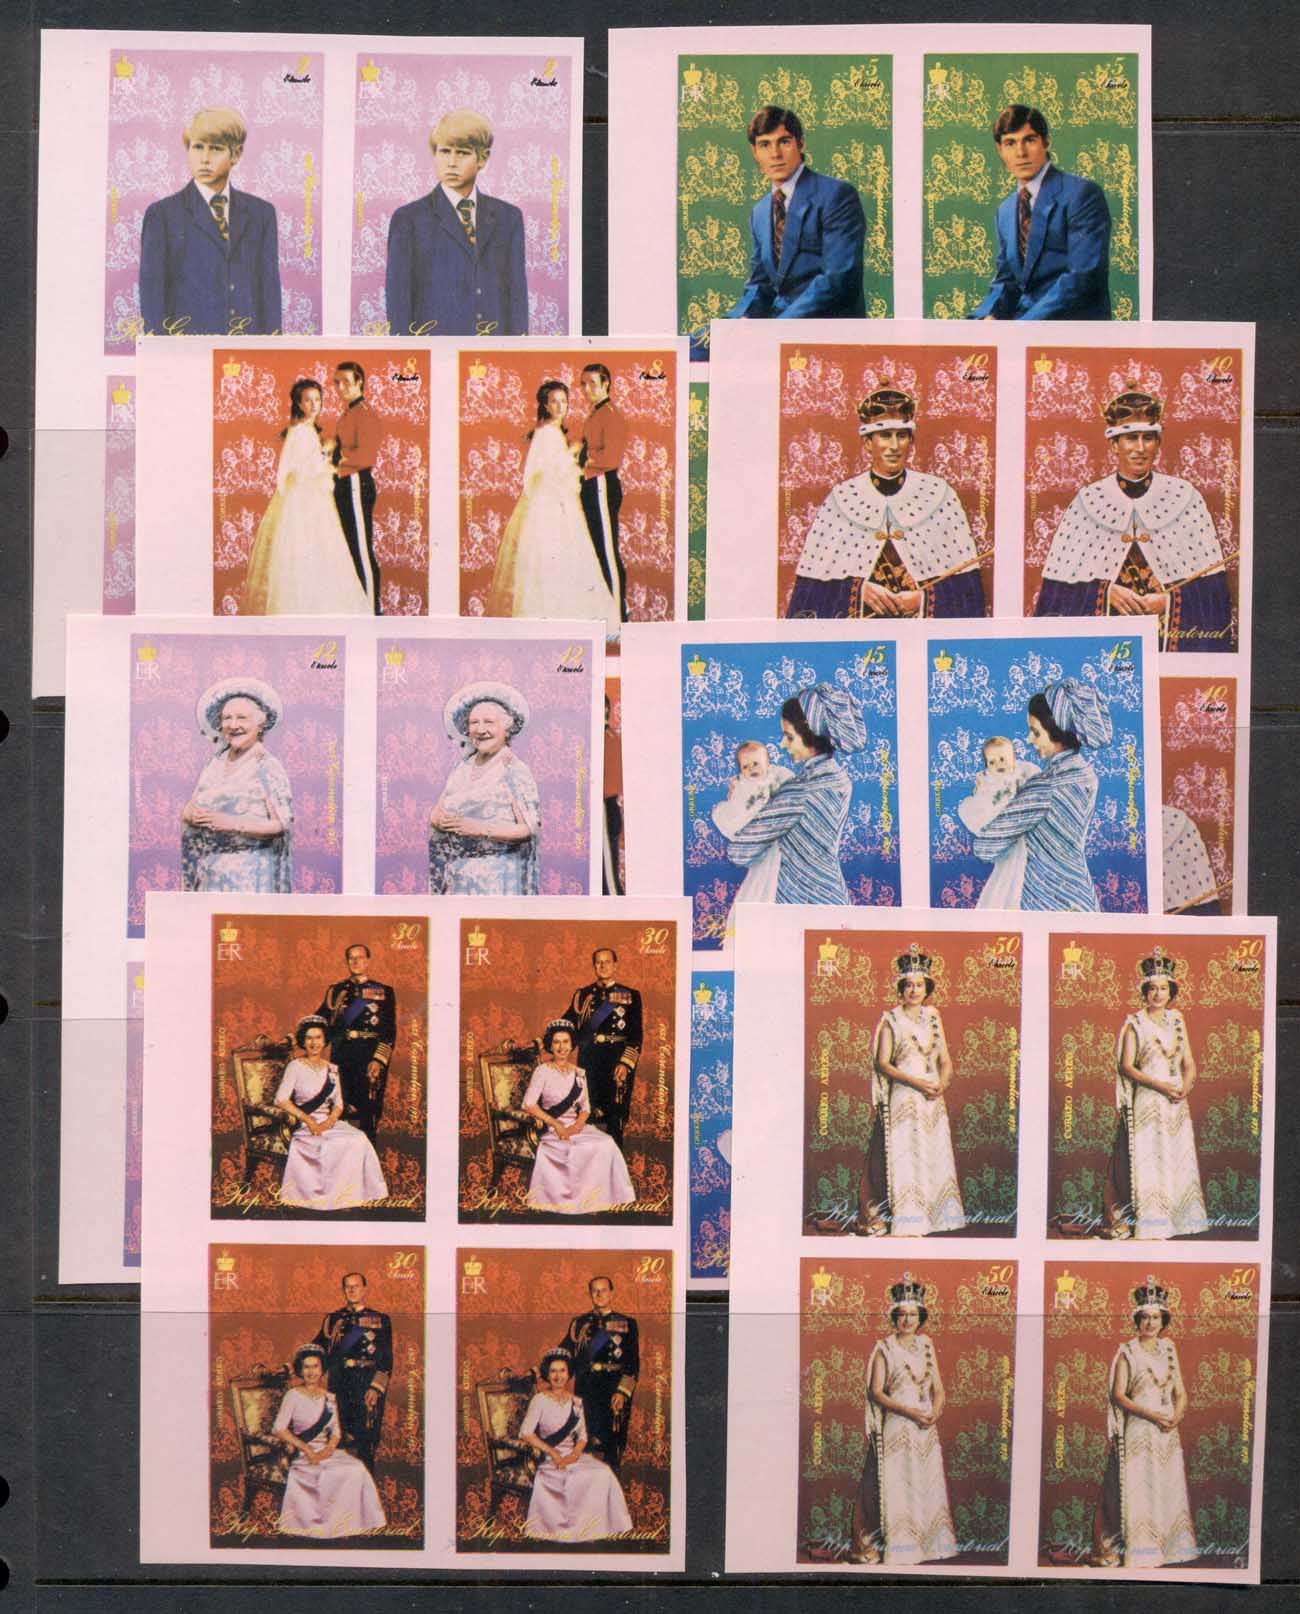 Equatorial Guinea 1973c. Royalty, Princess Anne, Prince Charles, Queen Mother IMPERF blk4 MUH